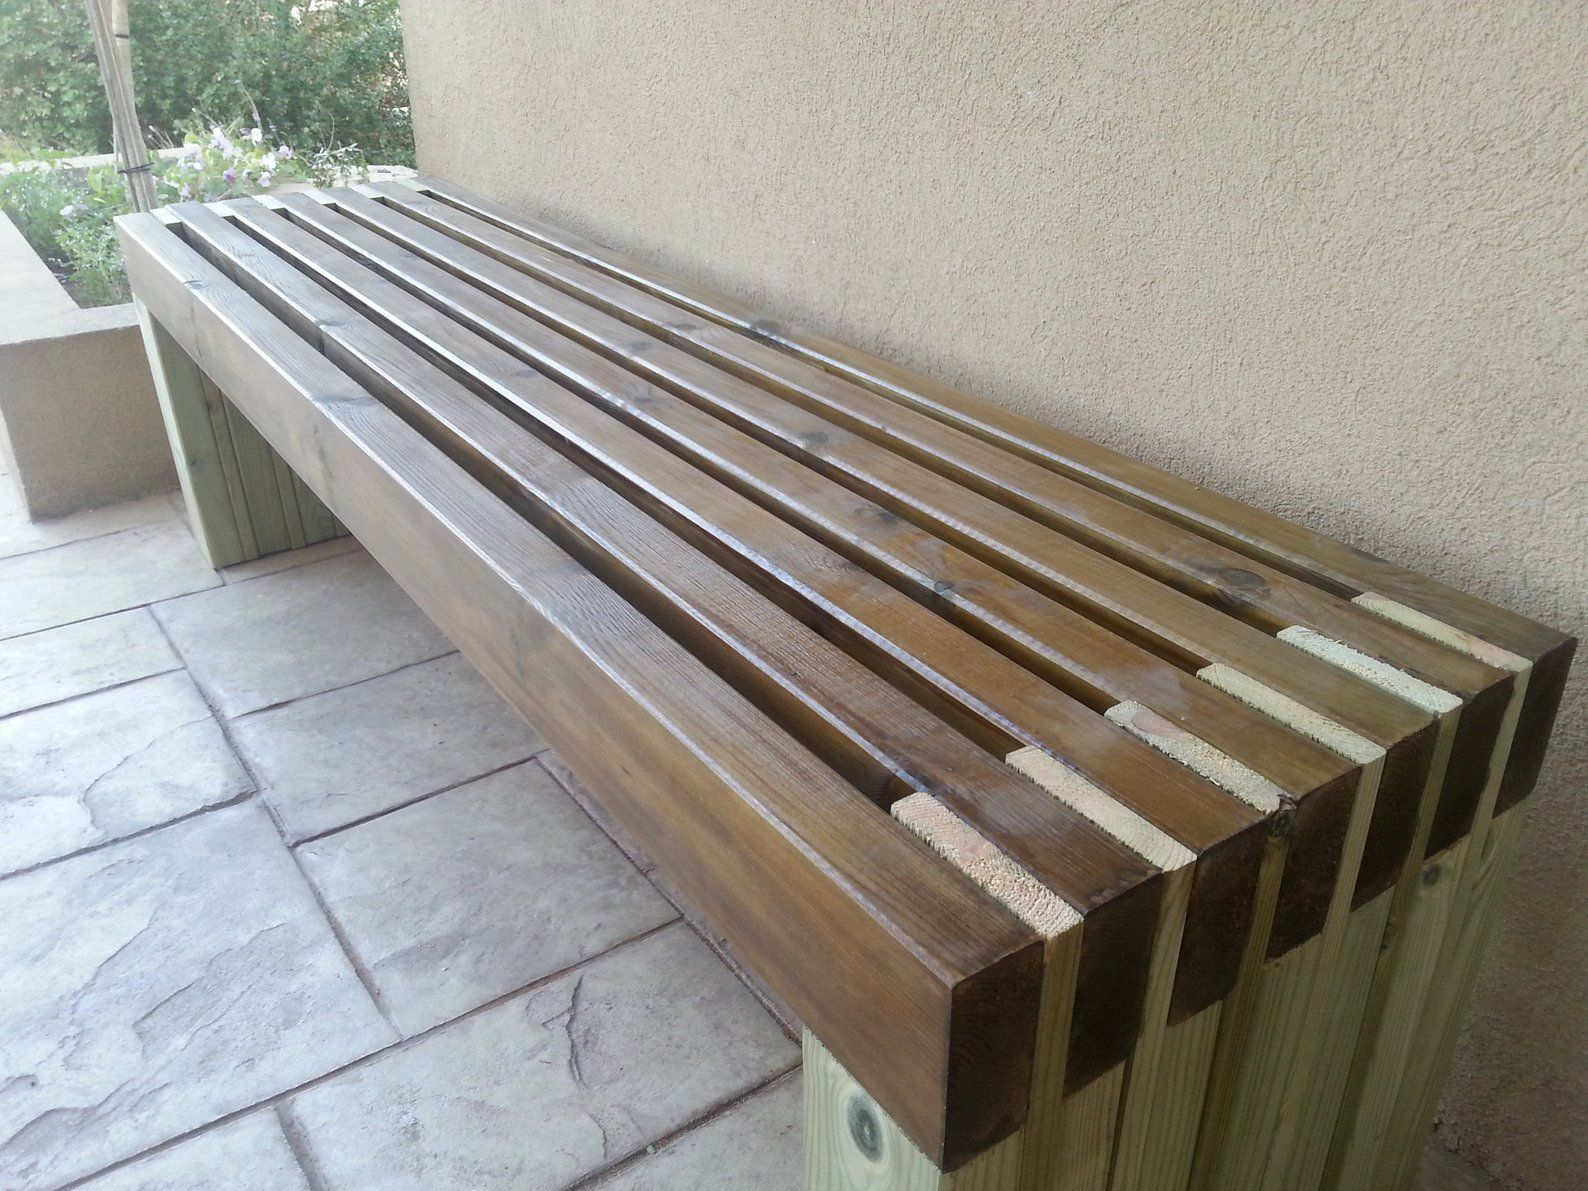 Astonishing Simple Bench Plans Outdoor Furniture Diy 2X4 Lumber Patio Andrewgaddart Wooden Chair Designs For Living Room Andrewgaddartcom